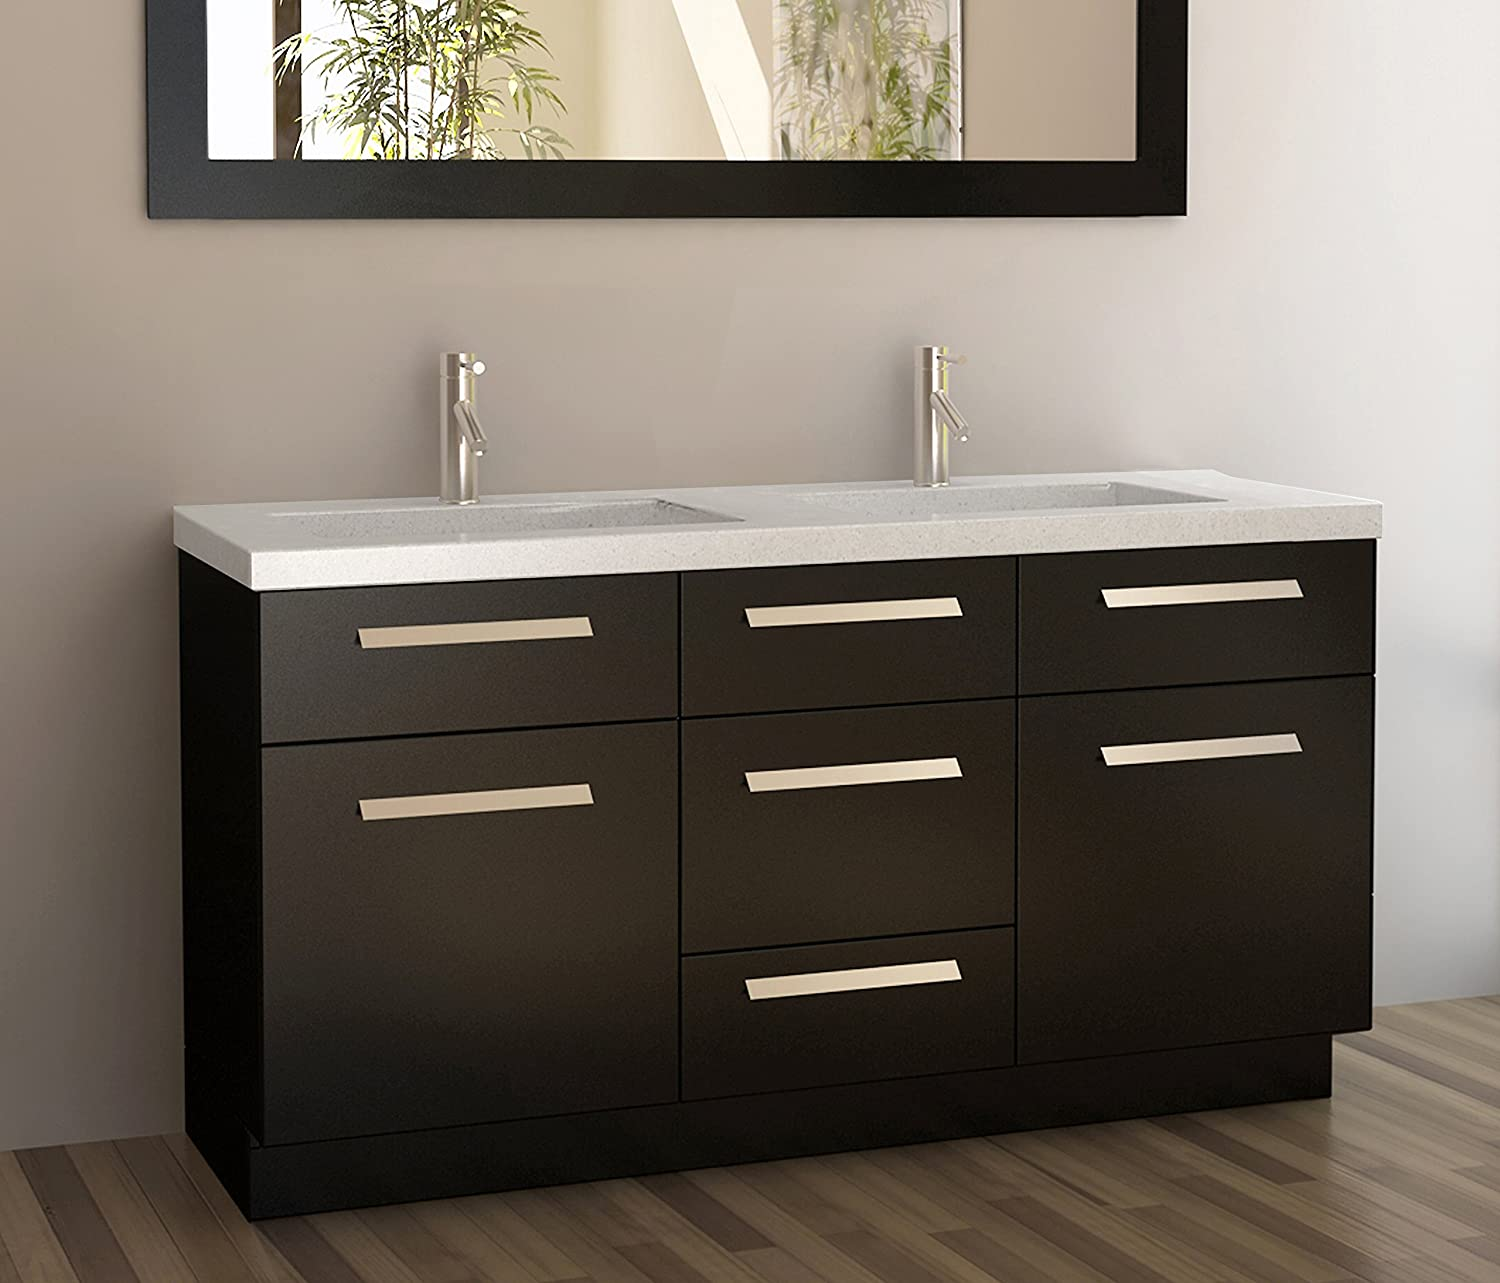 Design Element Moscony Double Sink Vanity Set With Espresso Finish, 60 Inch    Bathroom Vanities   Amazon.com